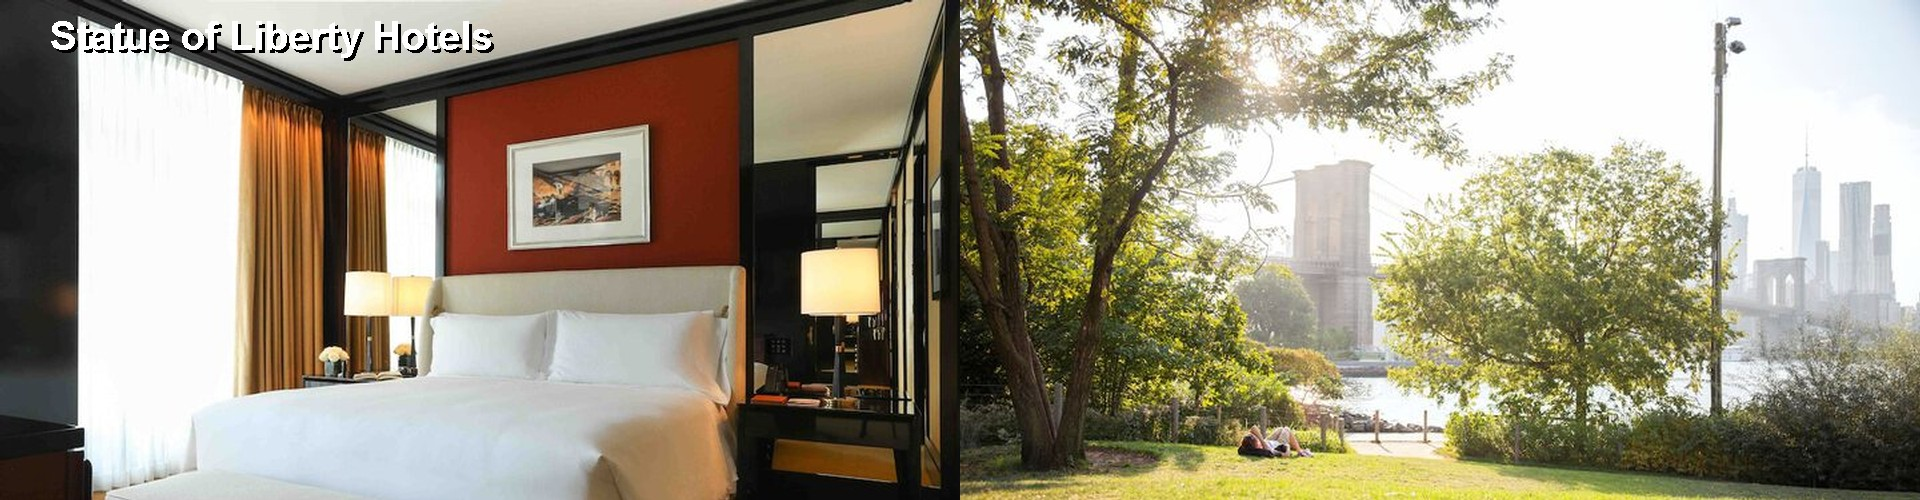 5 Best Hotels near Statue of Liberty